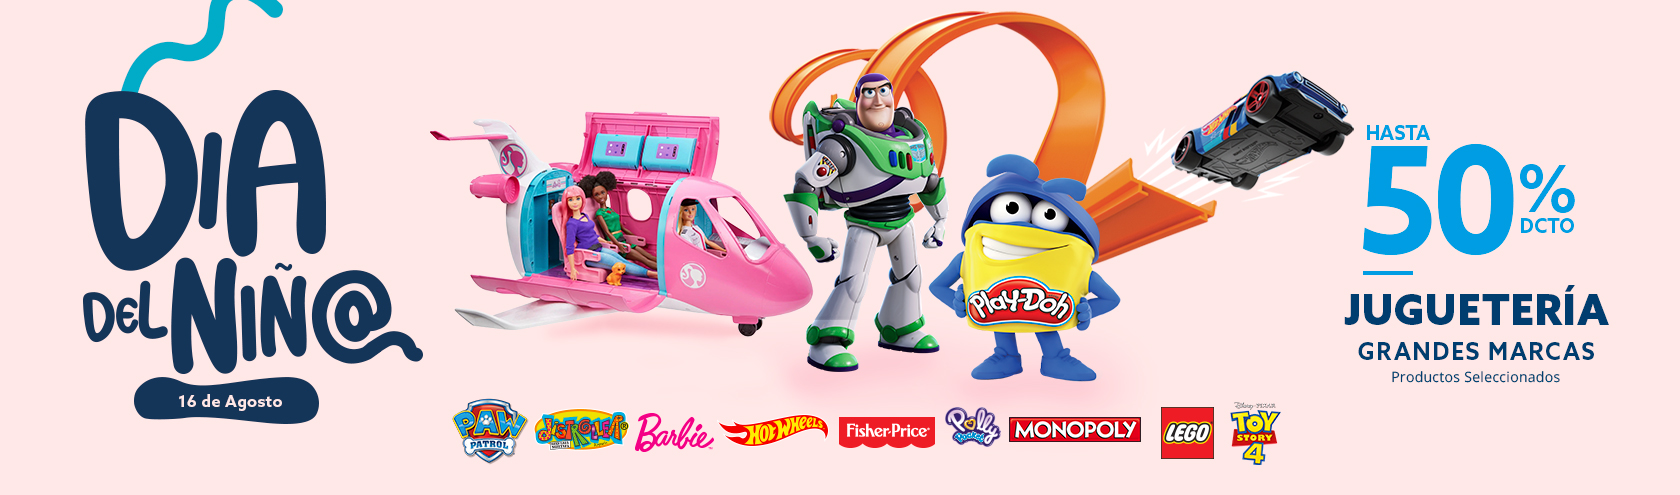 Hasta 50 porciento de descuento Paw Patrol, Barbie, Fisher Price, Hot Wheels, Nerf, Play Doh, Toy Story, Lego, LOL